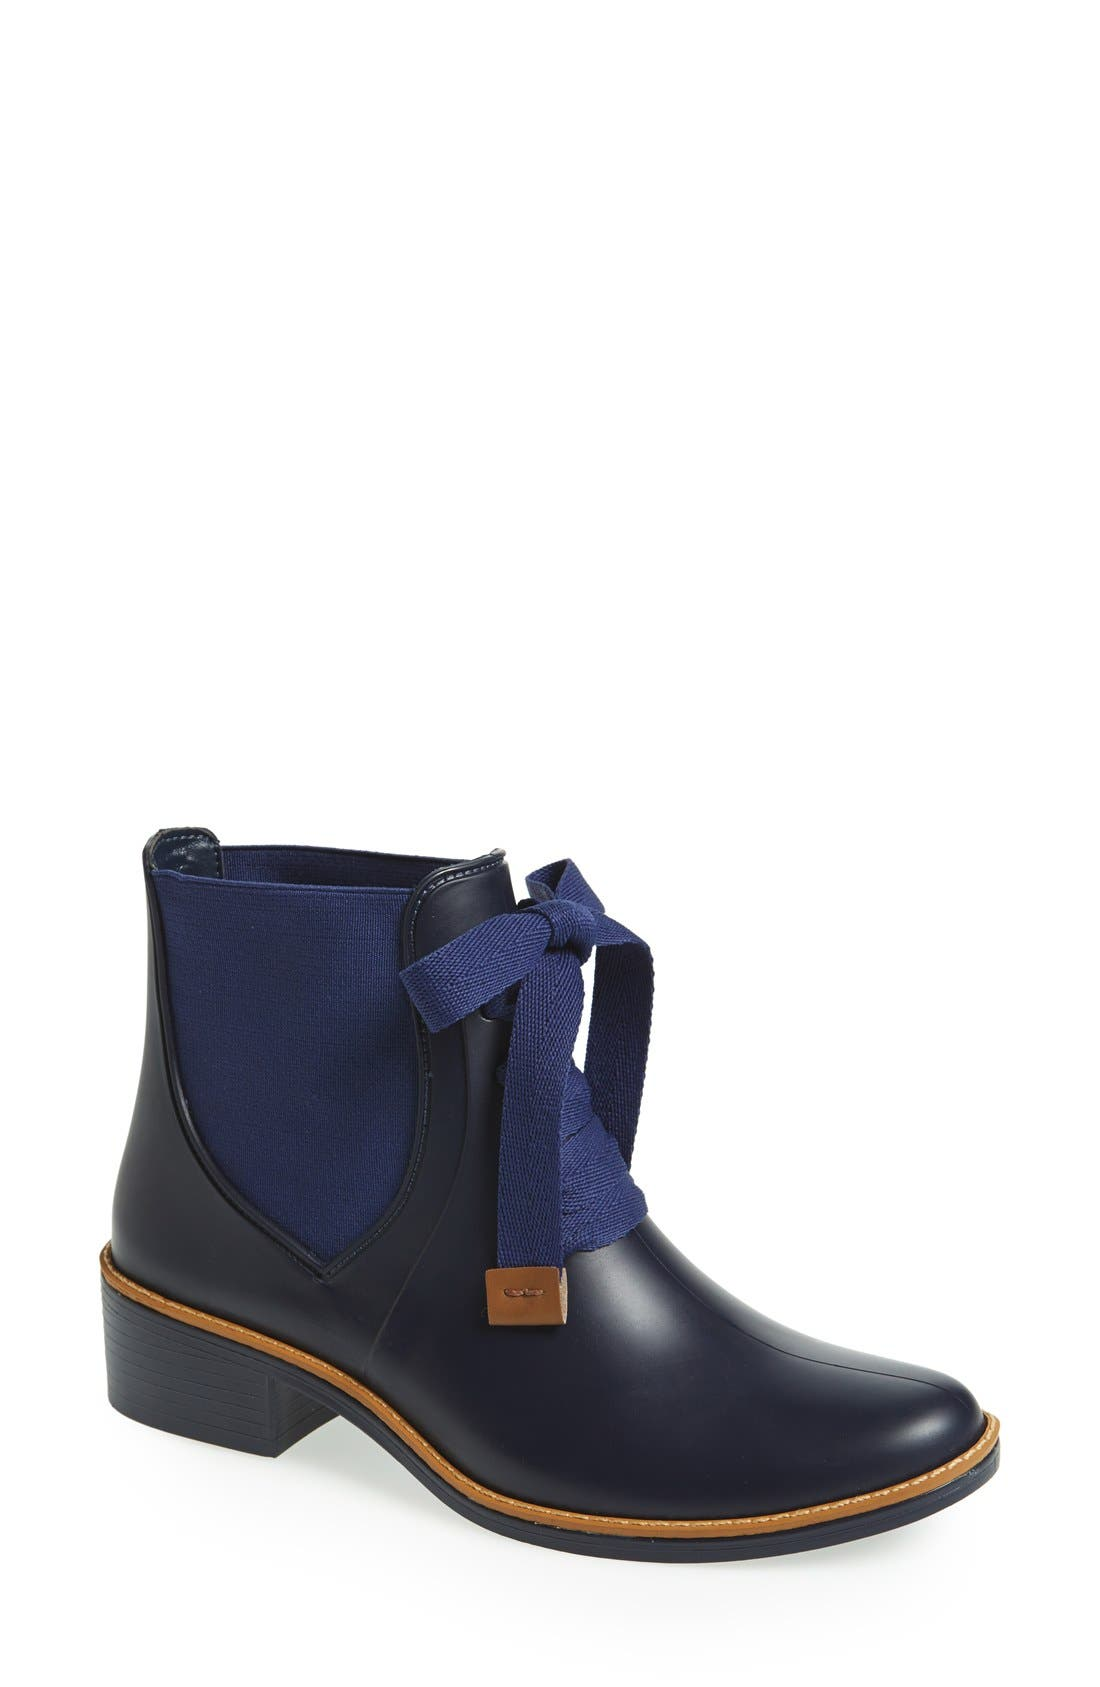 Main Image - Bernardo Lacey Short Waterproof Rain Boot (Women)